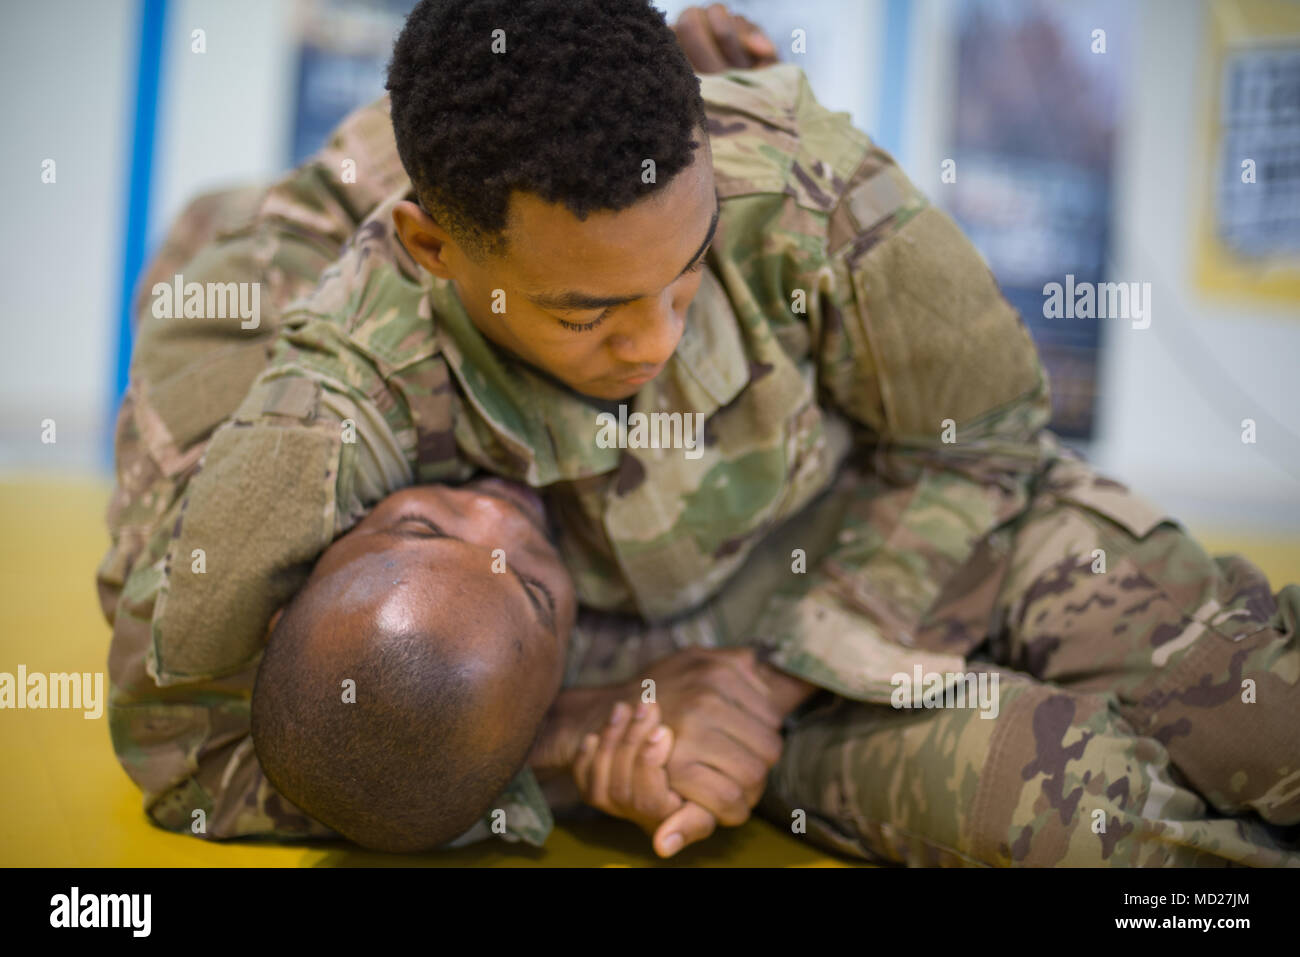 U.S. Army Pfc. Henry Tillman, with Headquarters and Headquarters Detachment, 39th Strategic Signal Battalion, headlocks Staff Sgt. Richard Amoah, assigned to Benelux Finance, 226th Financial Management Support Center, 21st Theater Sustainment Command, during the Joint Tactical Combatives Course, on Chièvres Air Base, Belgium, March 9, 2018. (U.S. Army photo by Visual Information Specialist Pierre-Etienne Courtejoie) - Stock Image